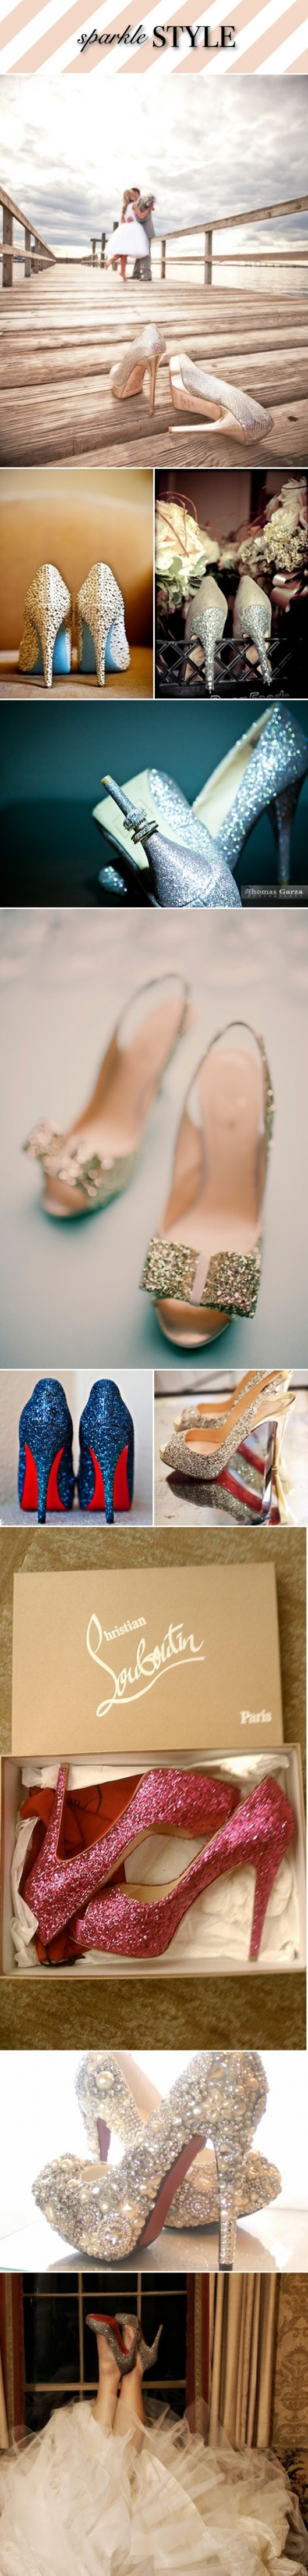 I want the red ones love love love :): Glamorous Sparkle, Favorite Shoes, Sparkly Shoes, Sparkle Wedding Shoes, Glitter Shoes, Sparkles Glitter, Sparkle Glitter, Glitter Heels, Sparkle Shoes